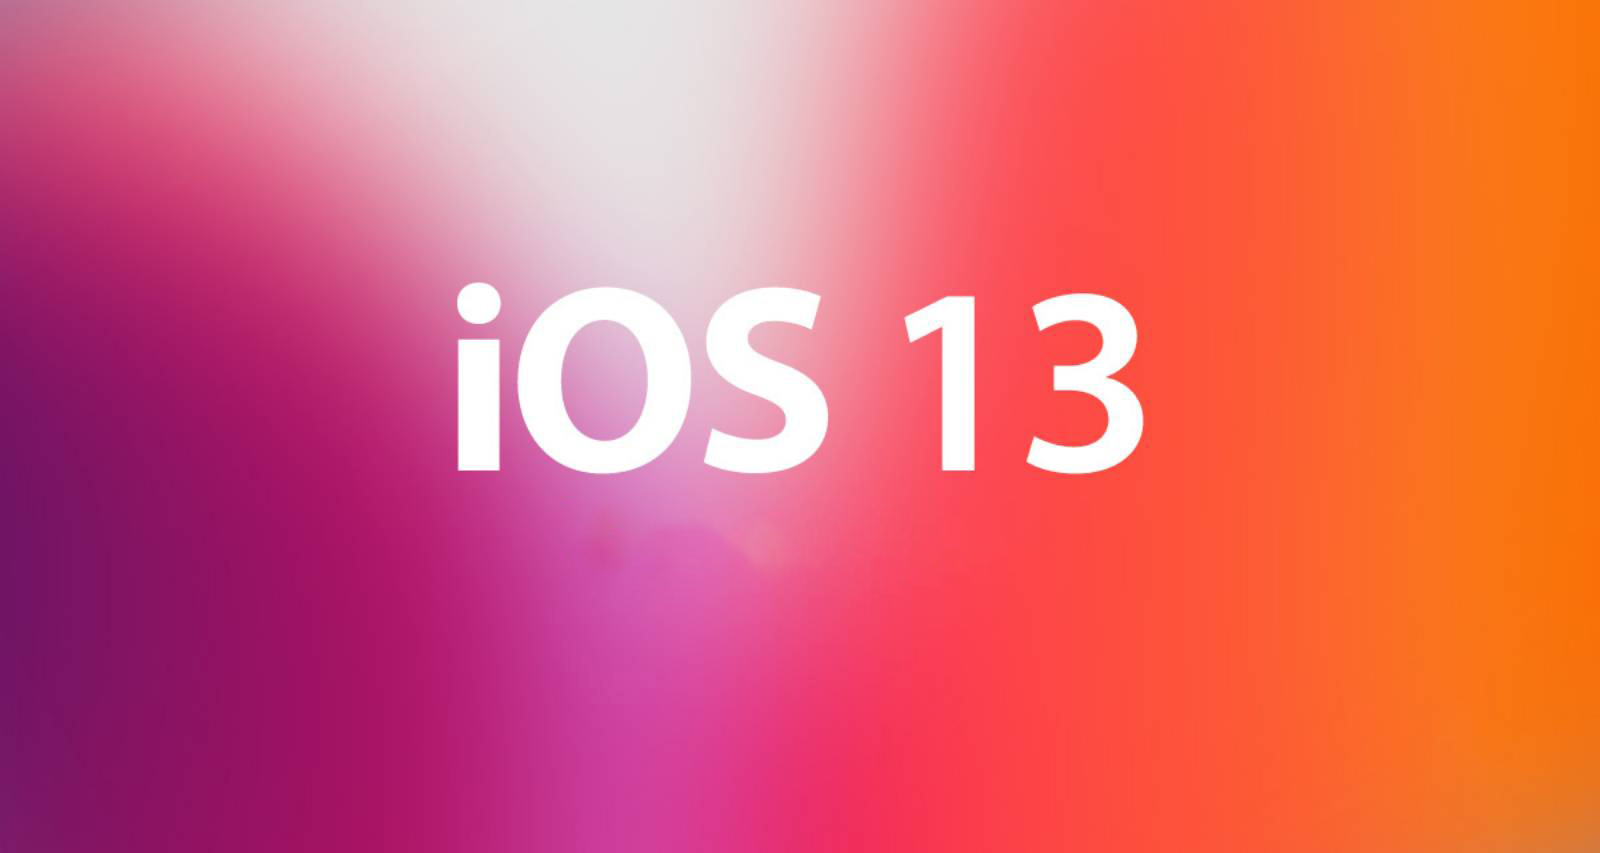 ios 13 decizia apple iphone ipad